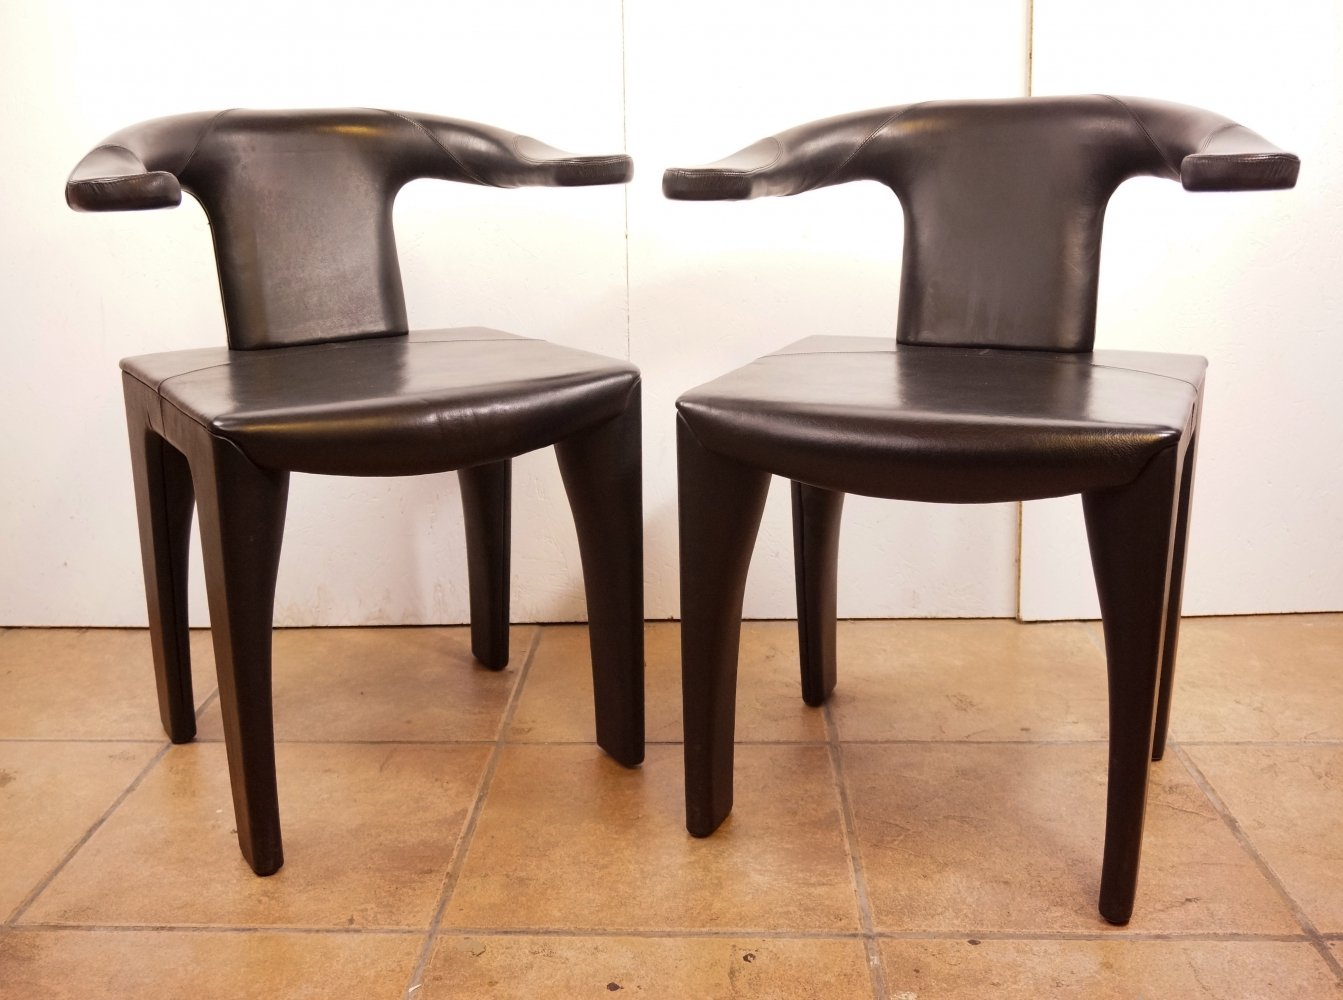 Pair of Catalan Leather armchairs, 1970s